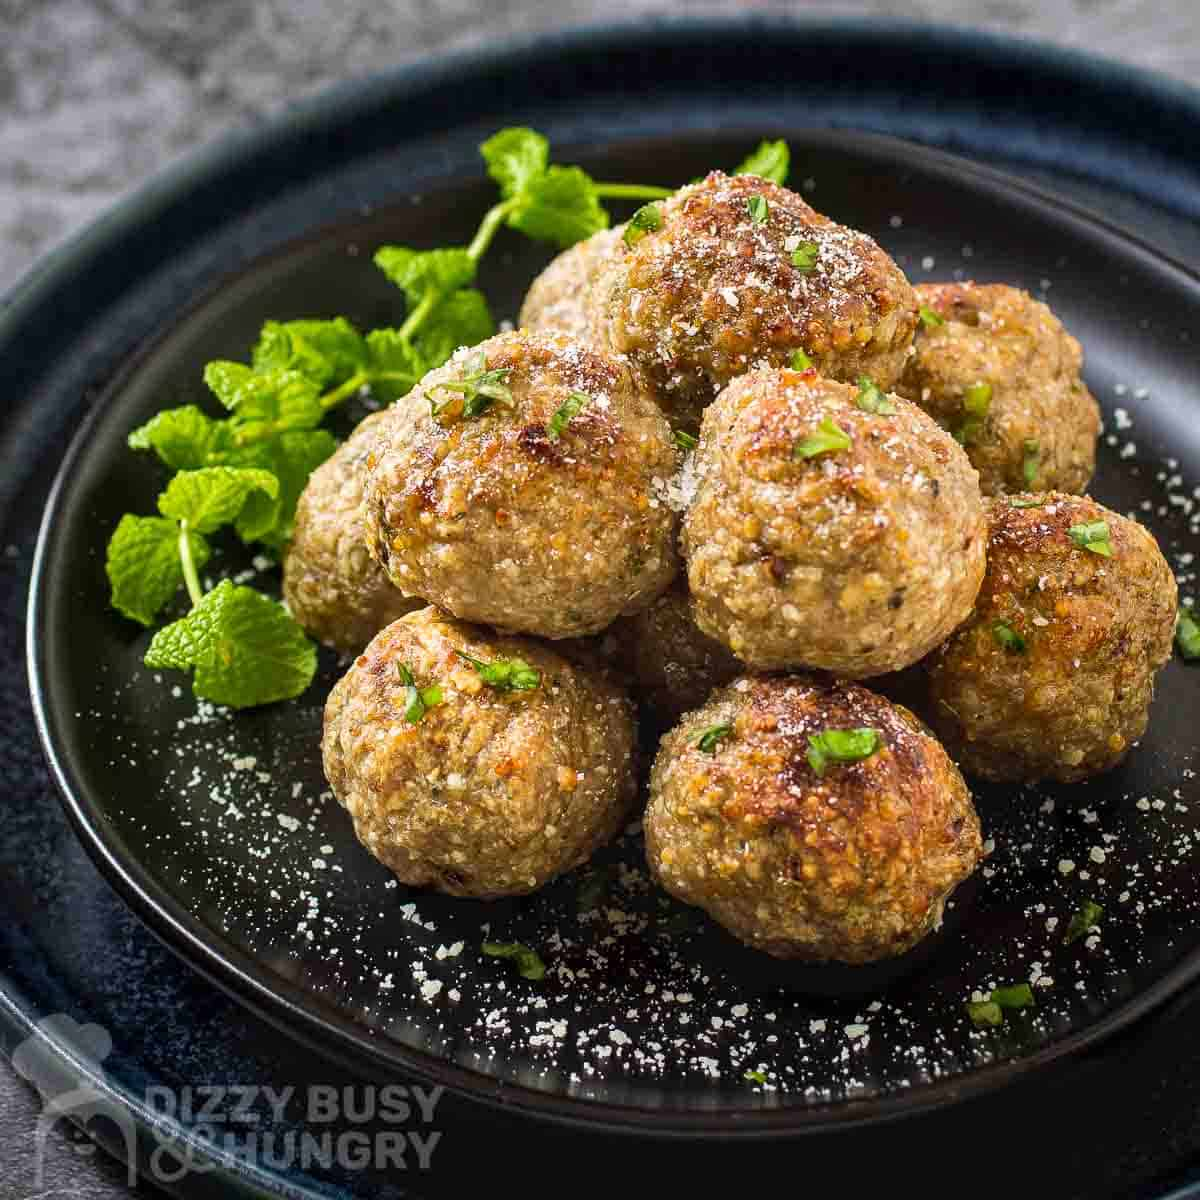 Side shot of multiple meatballs stacked on a black plate garnished with herbs and parmesan cheese.